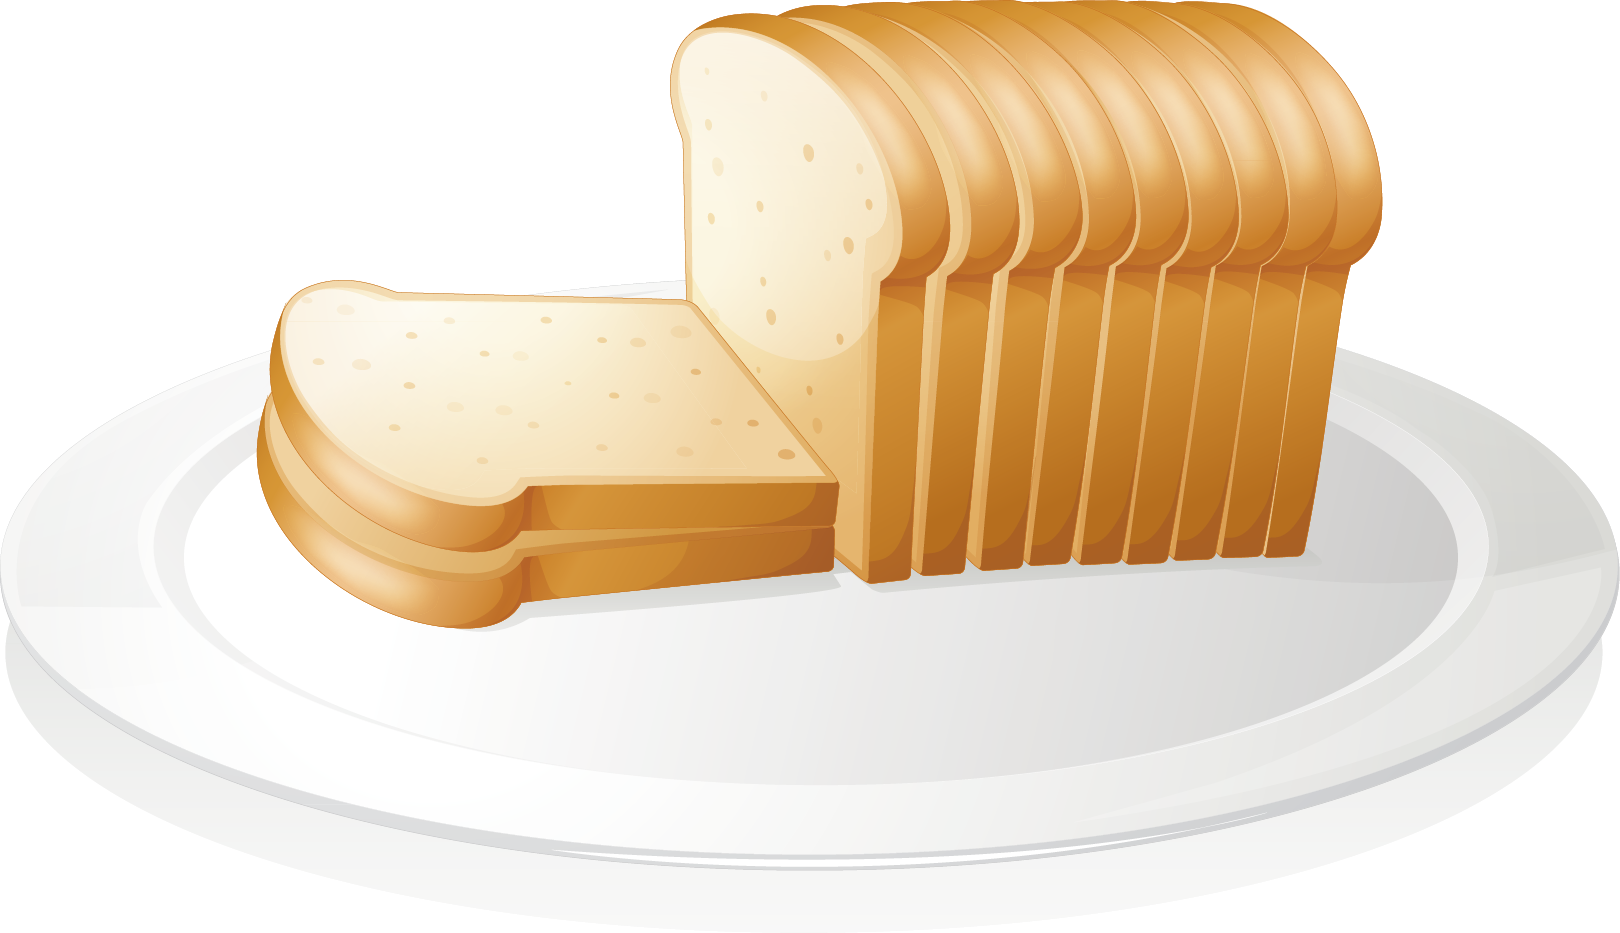 clip art freeuse library Bread clipart breakfast bread. Toast cheese sandwich baguette.